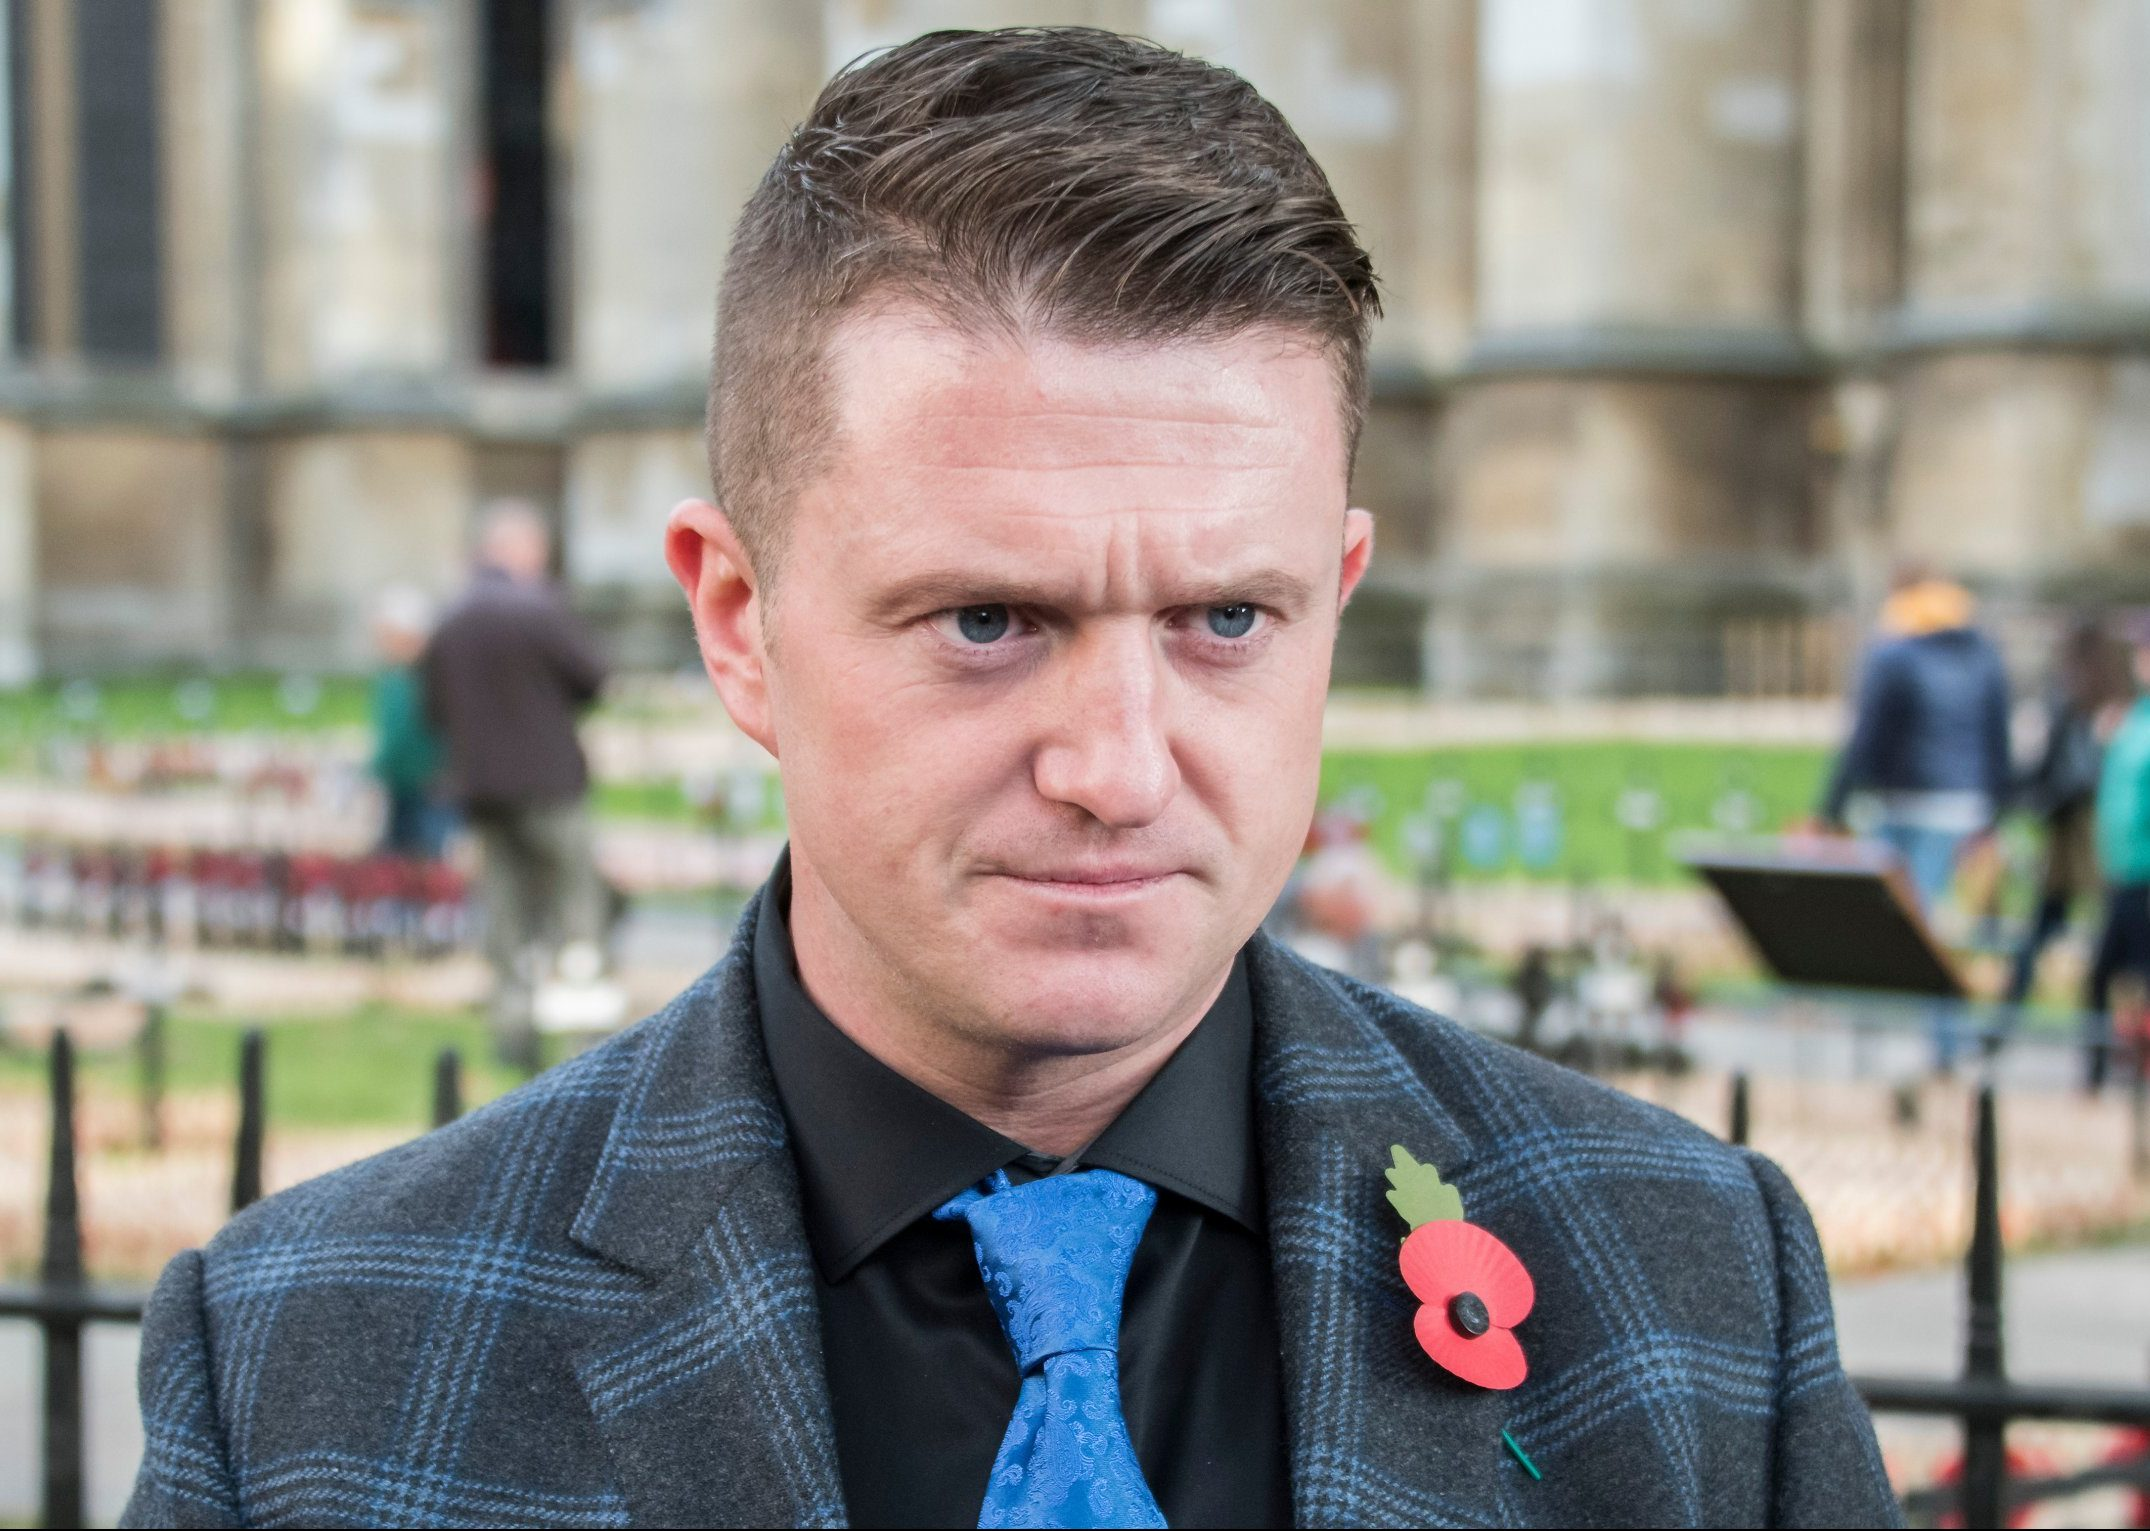 Mandatory Credit: Photo by Guy Bell/REX (9968761al) Tommy Robinson makes a video outside while preperations for the Royal British Legion, Field of Remembrance at Westminster Abbey take place. Field of Remembrance preparations, London, UK - 06 Nov 2018